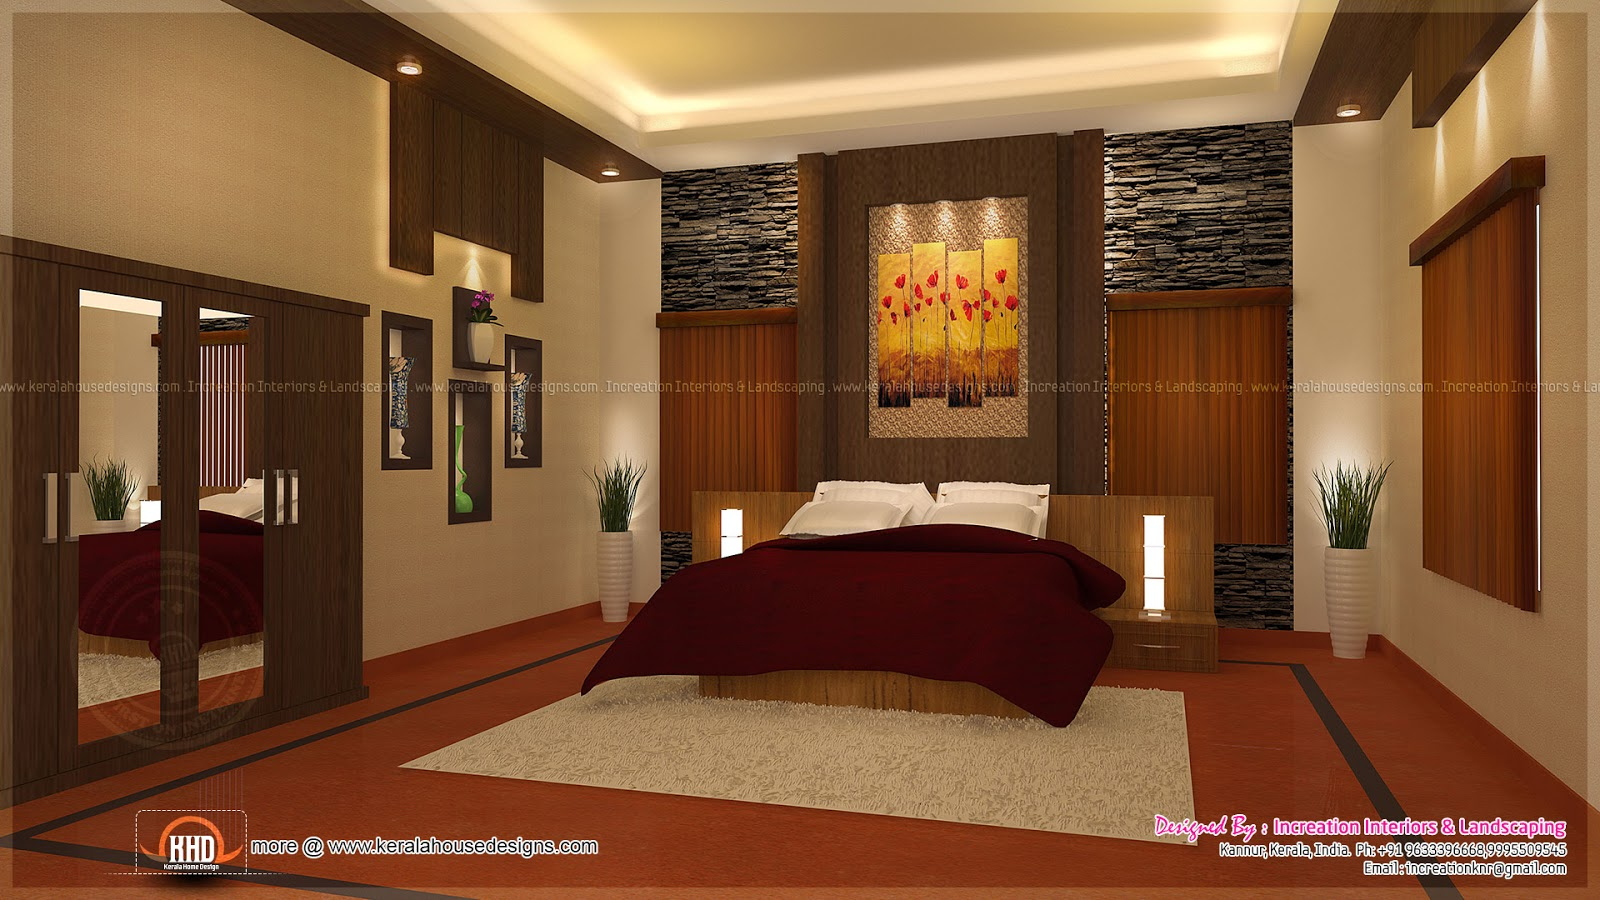 Master bedroom interior for Model bedroom interior design